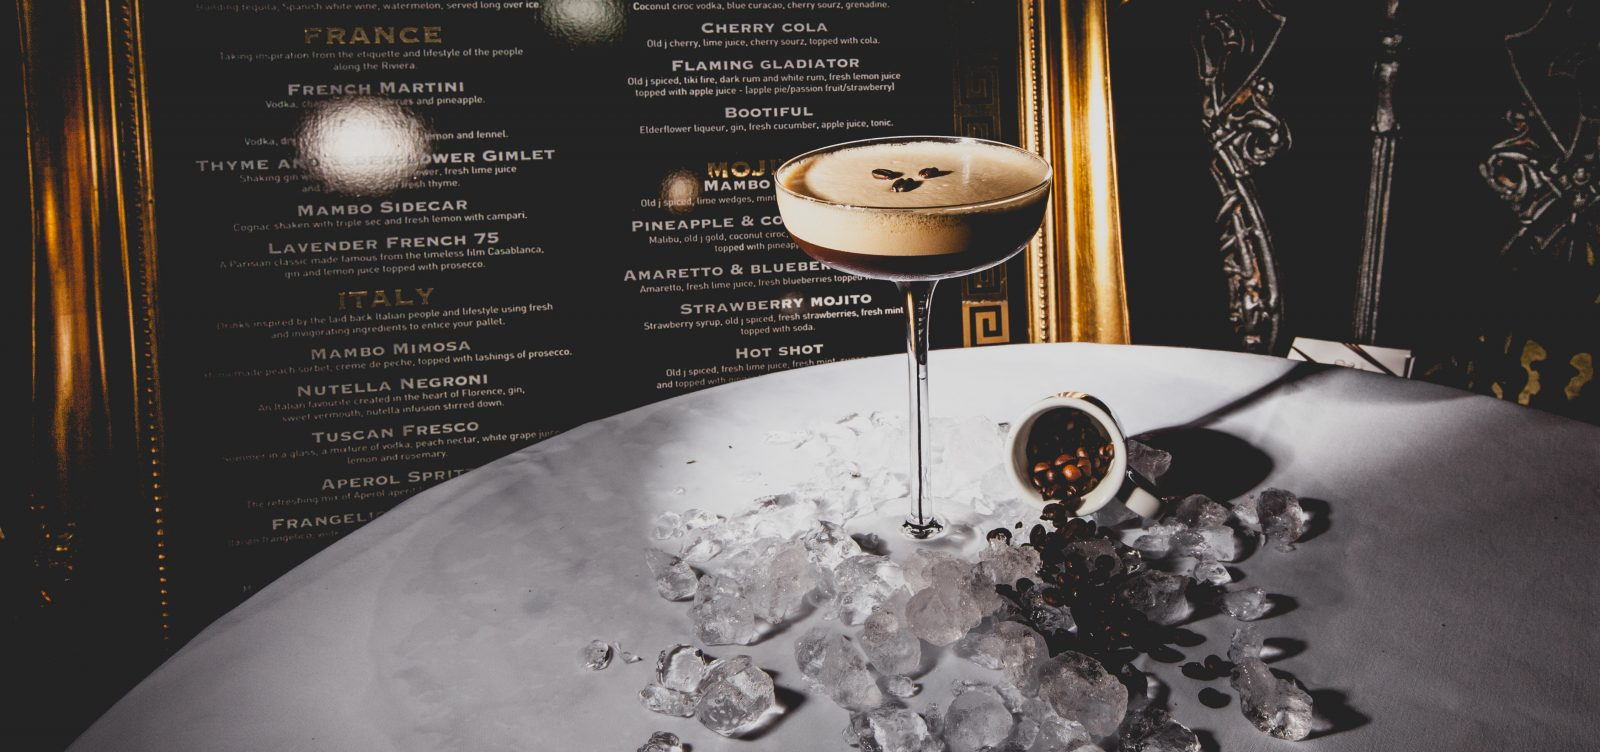 Espresso Martini by Mambo Wine and Dine | Savour Magazine